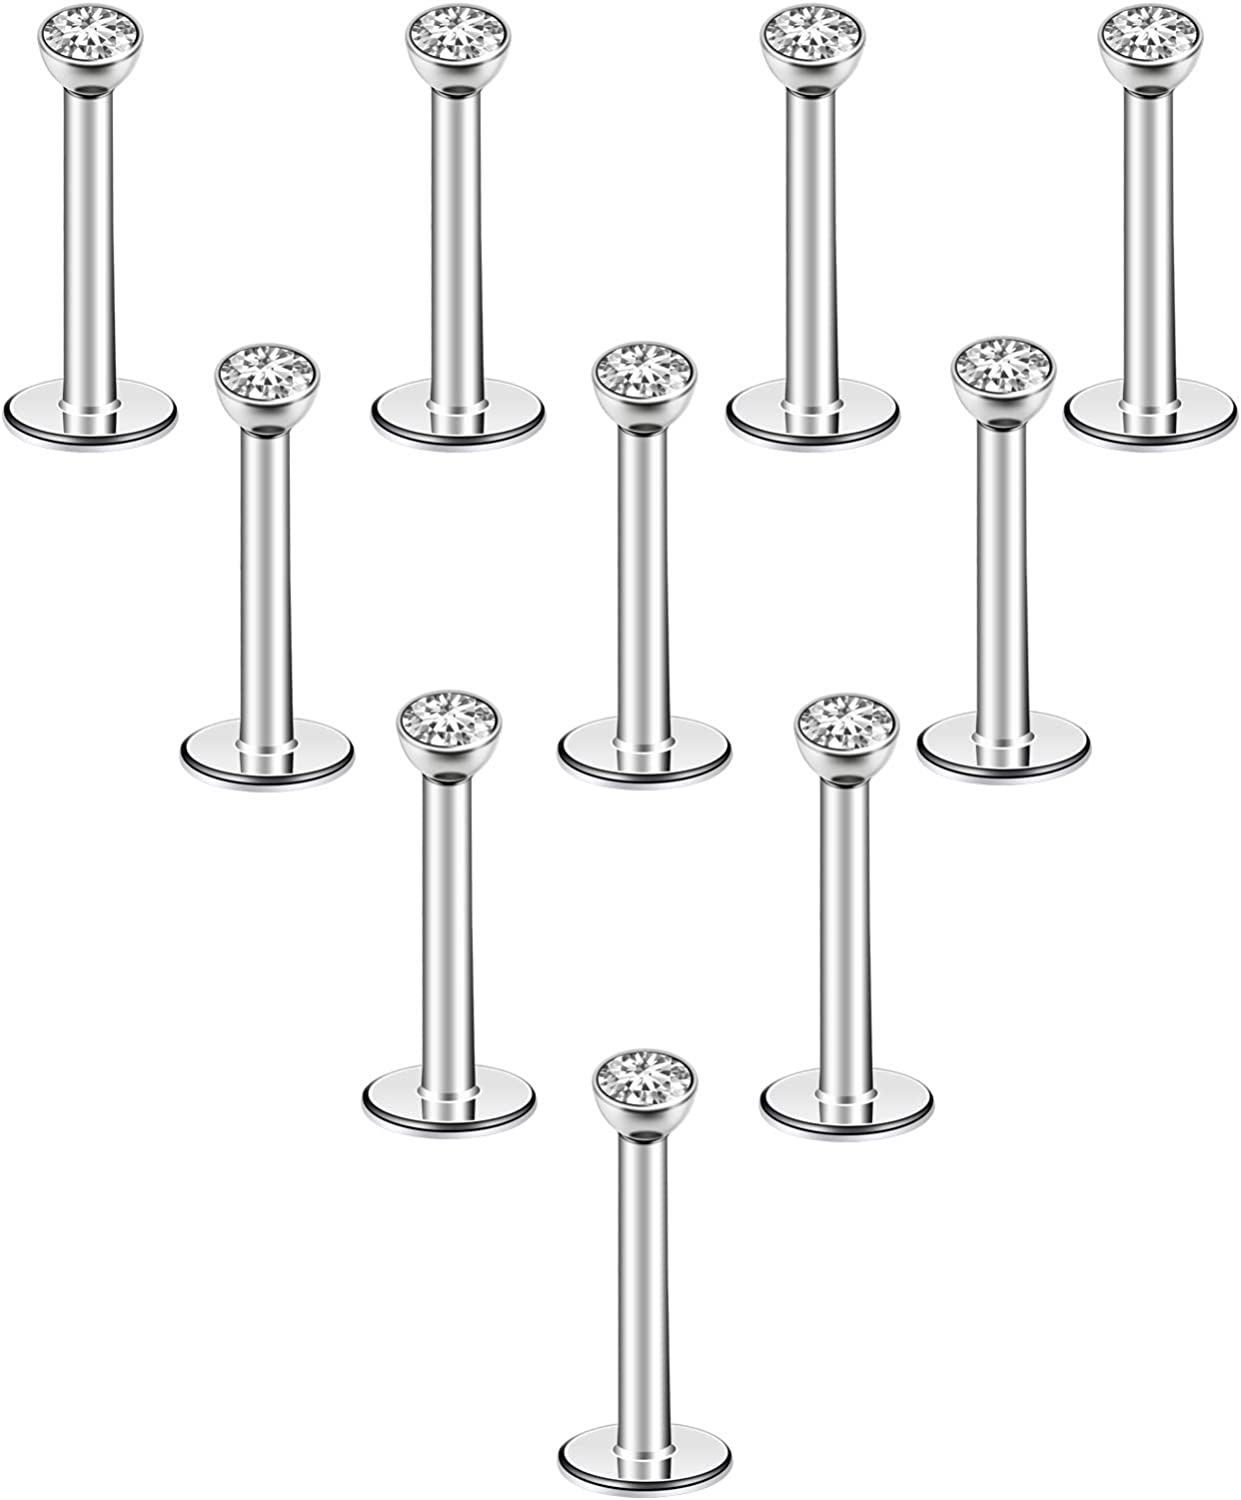 CrazyPiercing 10Pcs 16G Lip Rings 6mm 8mm 10mm Labret Monroe Lip Ring Stainless Steel Nose Studs Piercing Internally Threaded Piercing Jewelry with 4mm CZ